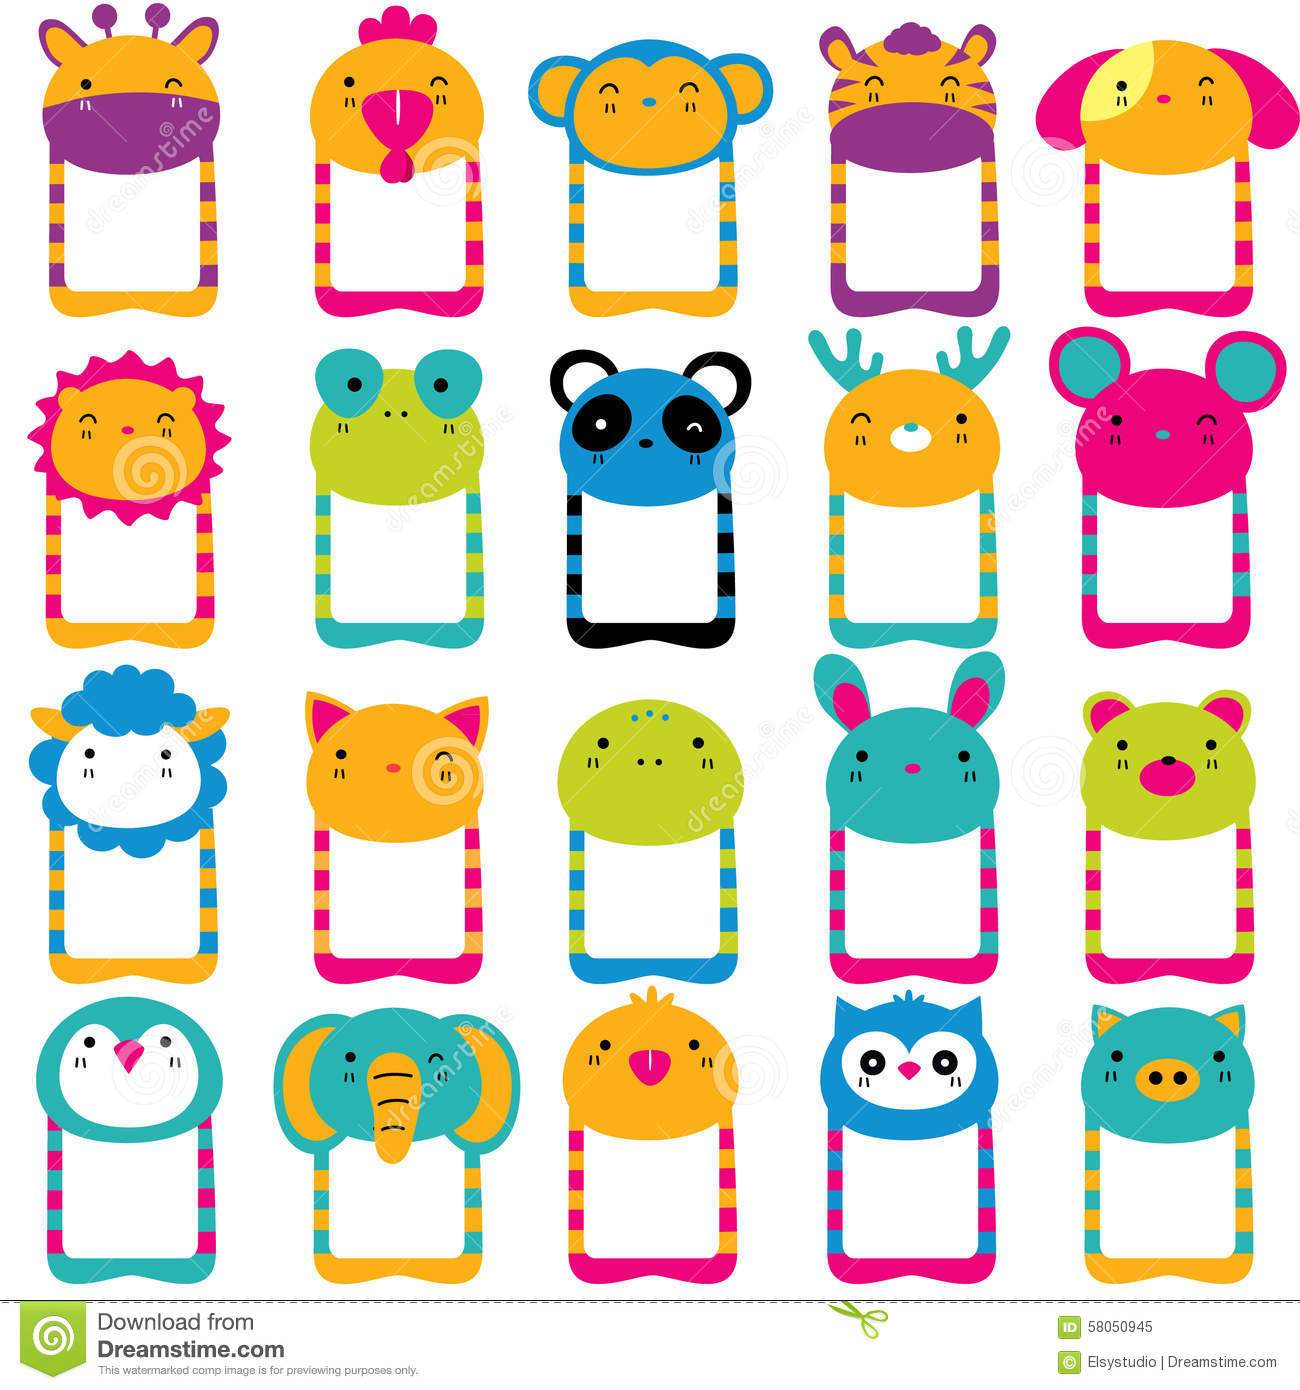 8 objects clipart image transparent download 19 objects clipart 8 » Clipart Portal image transparent download